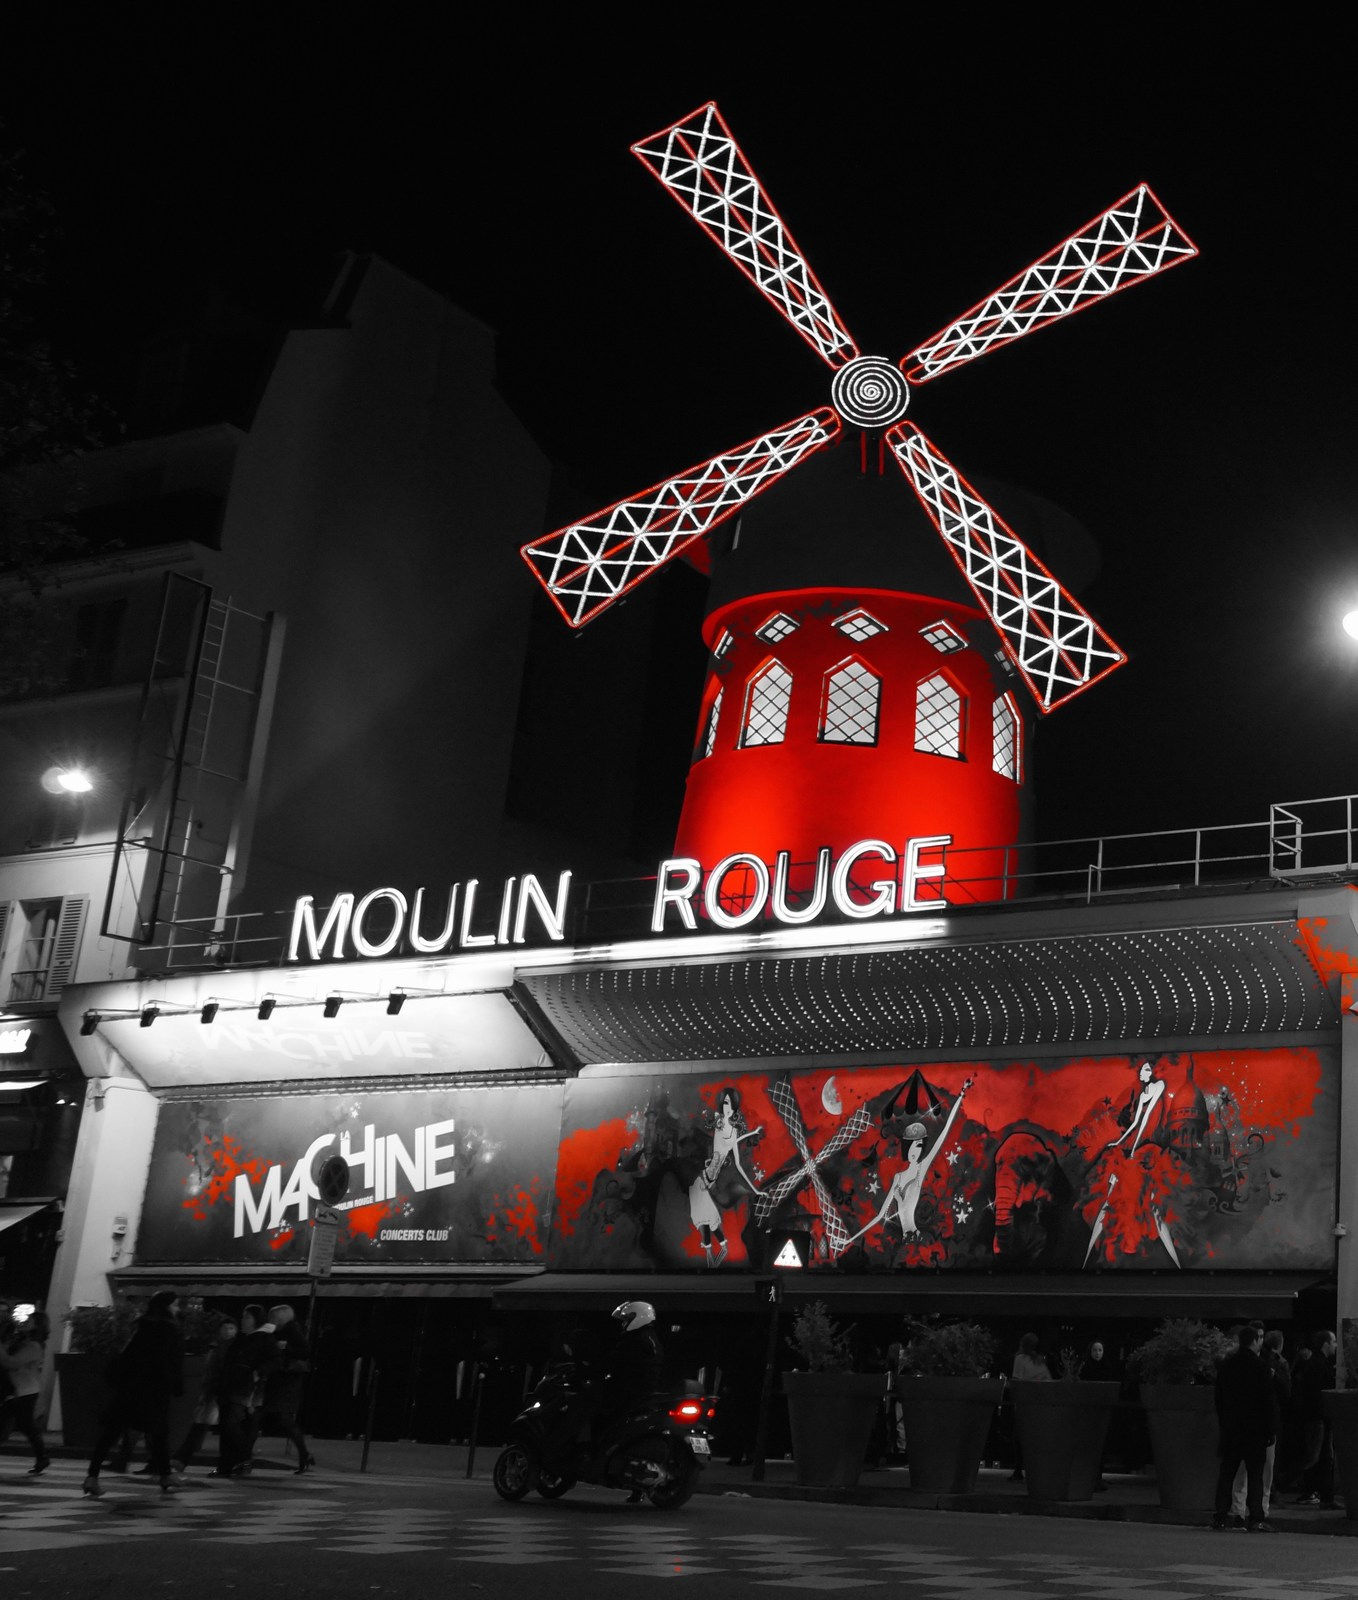 Moulin Rouge Libro Moulin Rouge